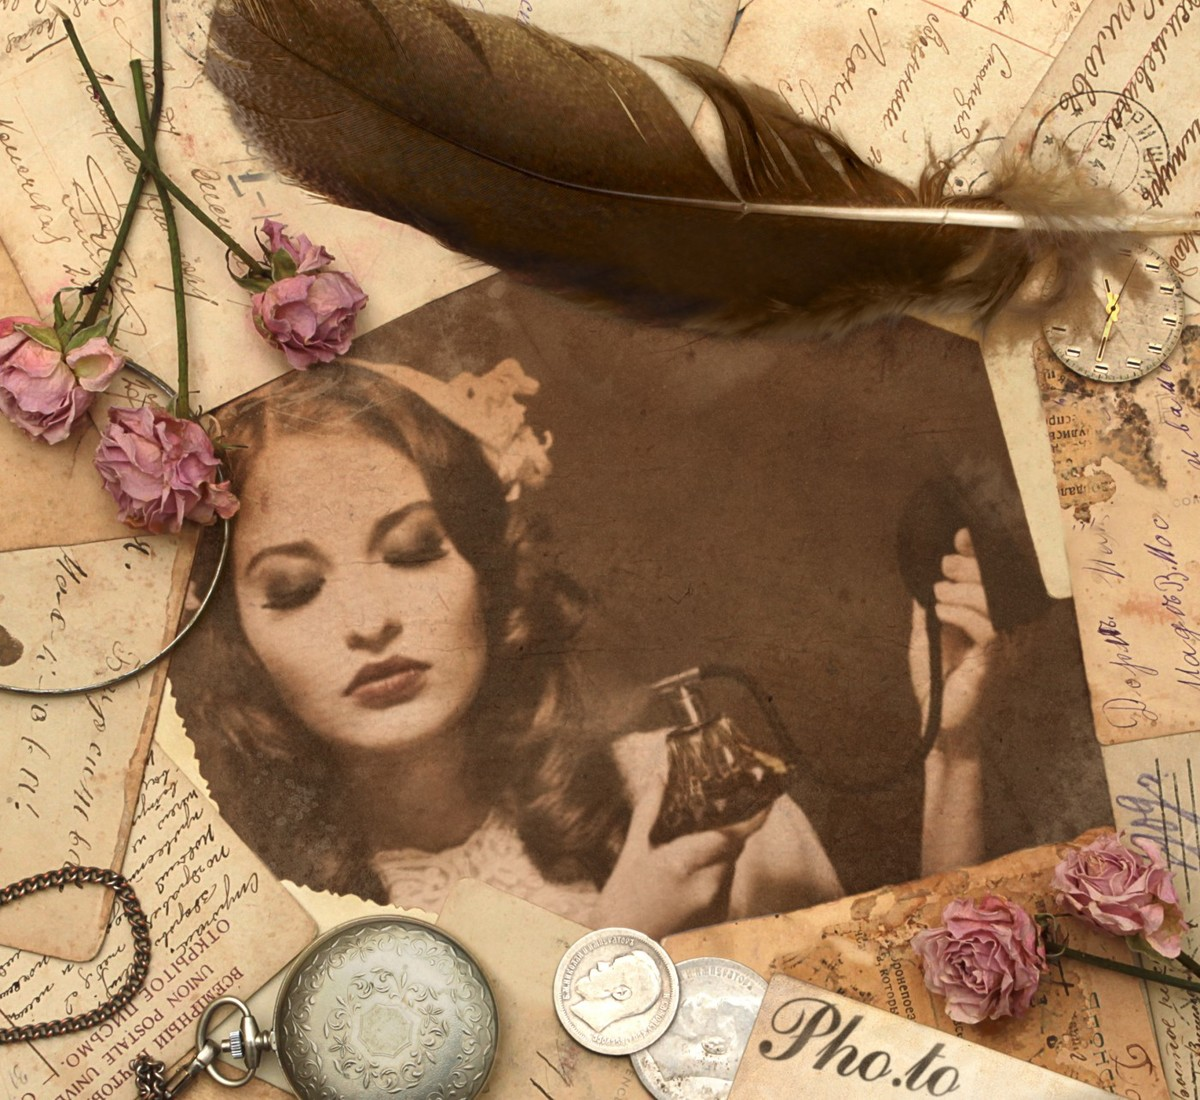 How to make a birthday card from photo in vintage style